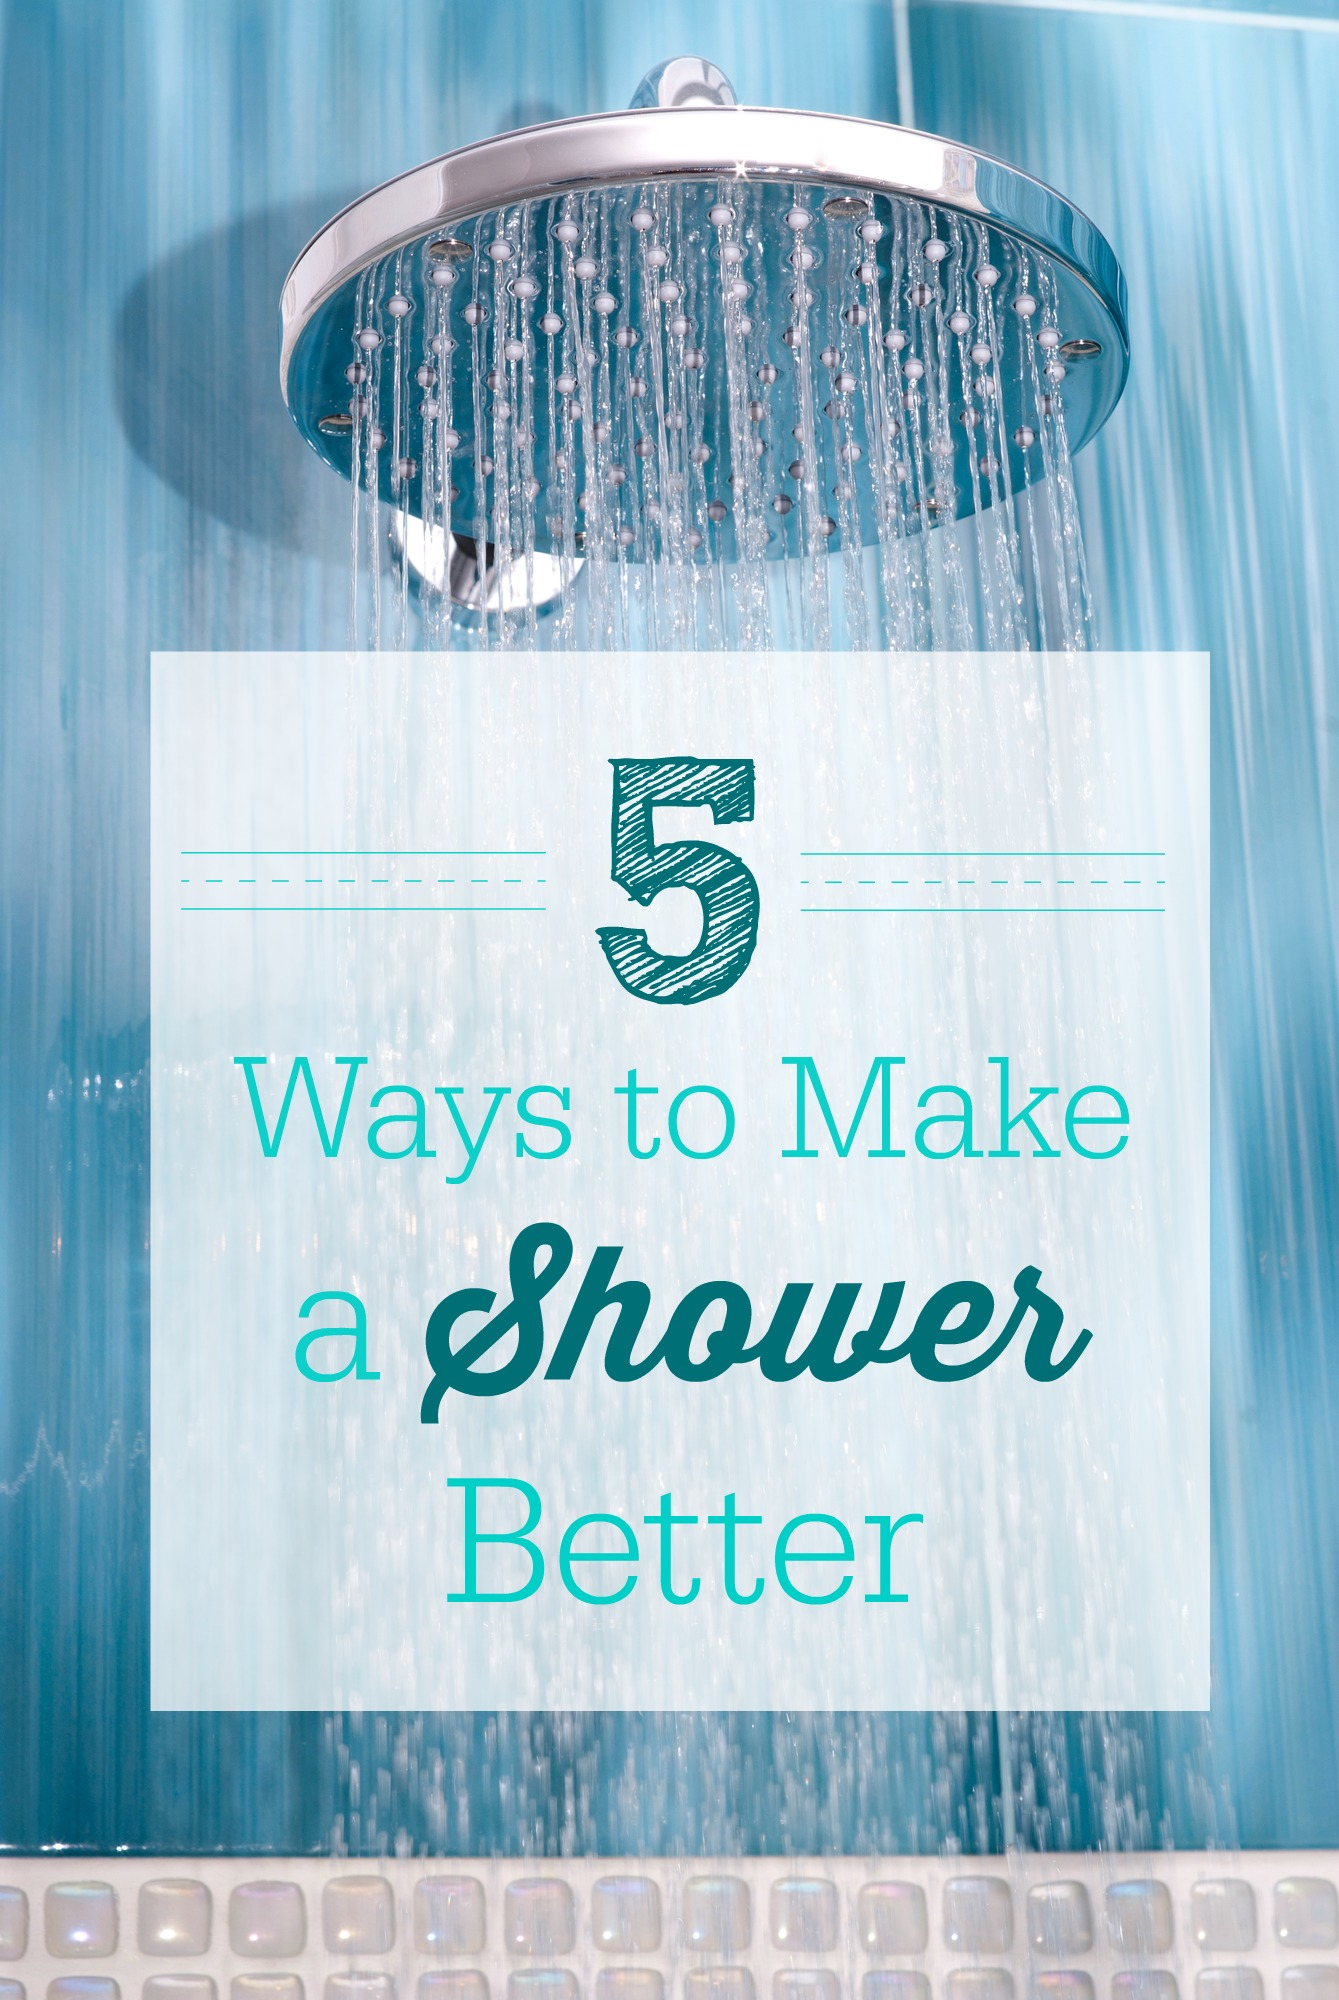 Give shower time an upgrade with this 5 simple improvements from just the right tools to just the right tunes.